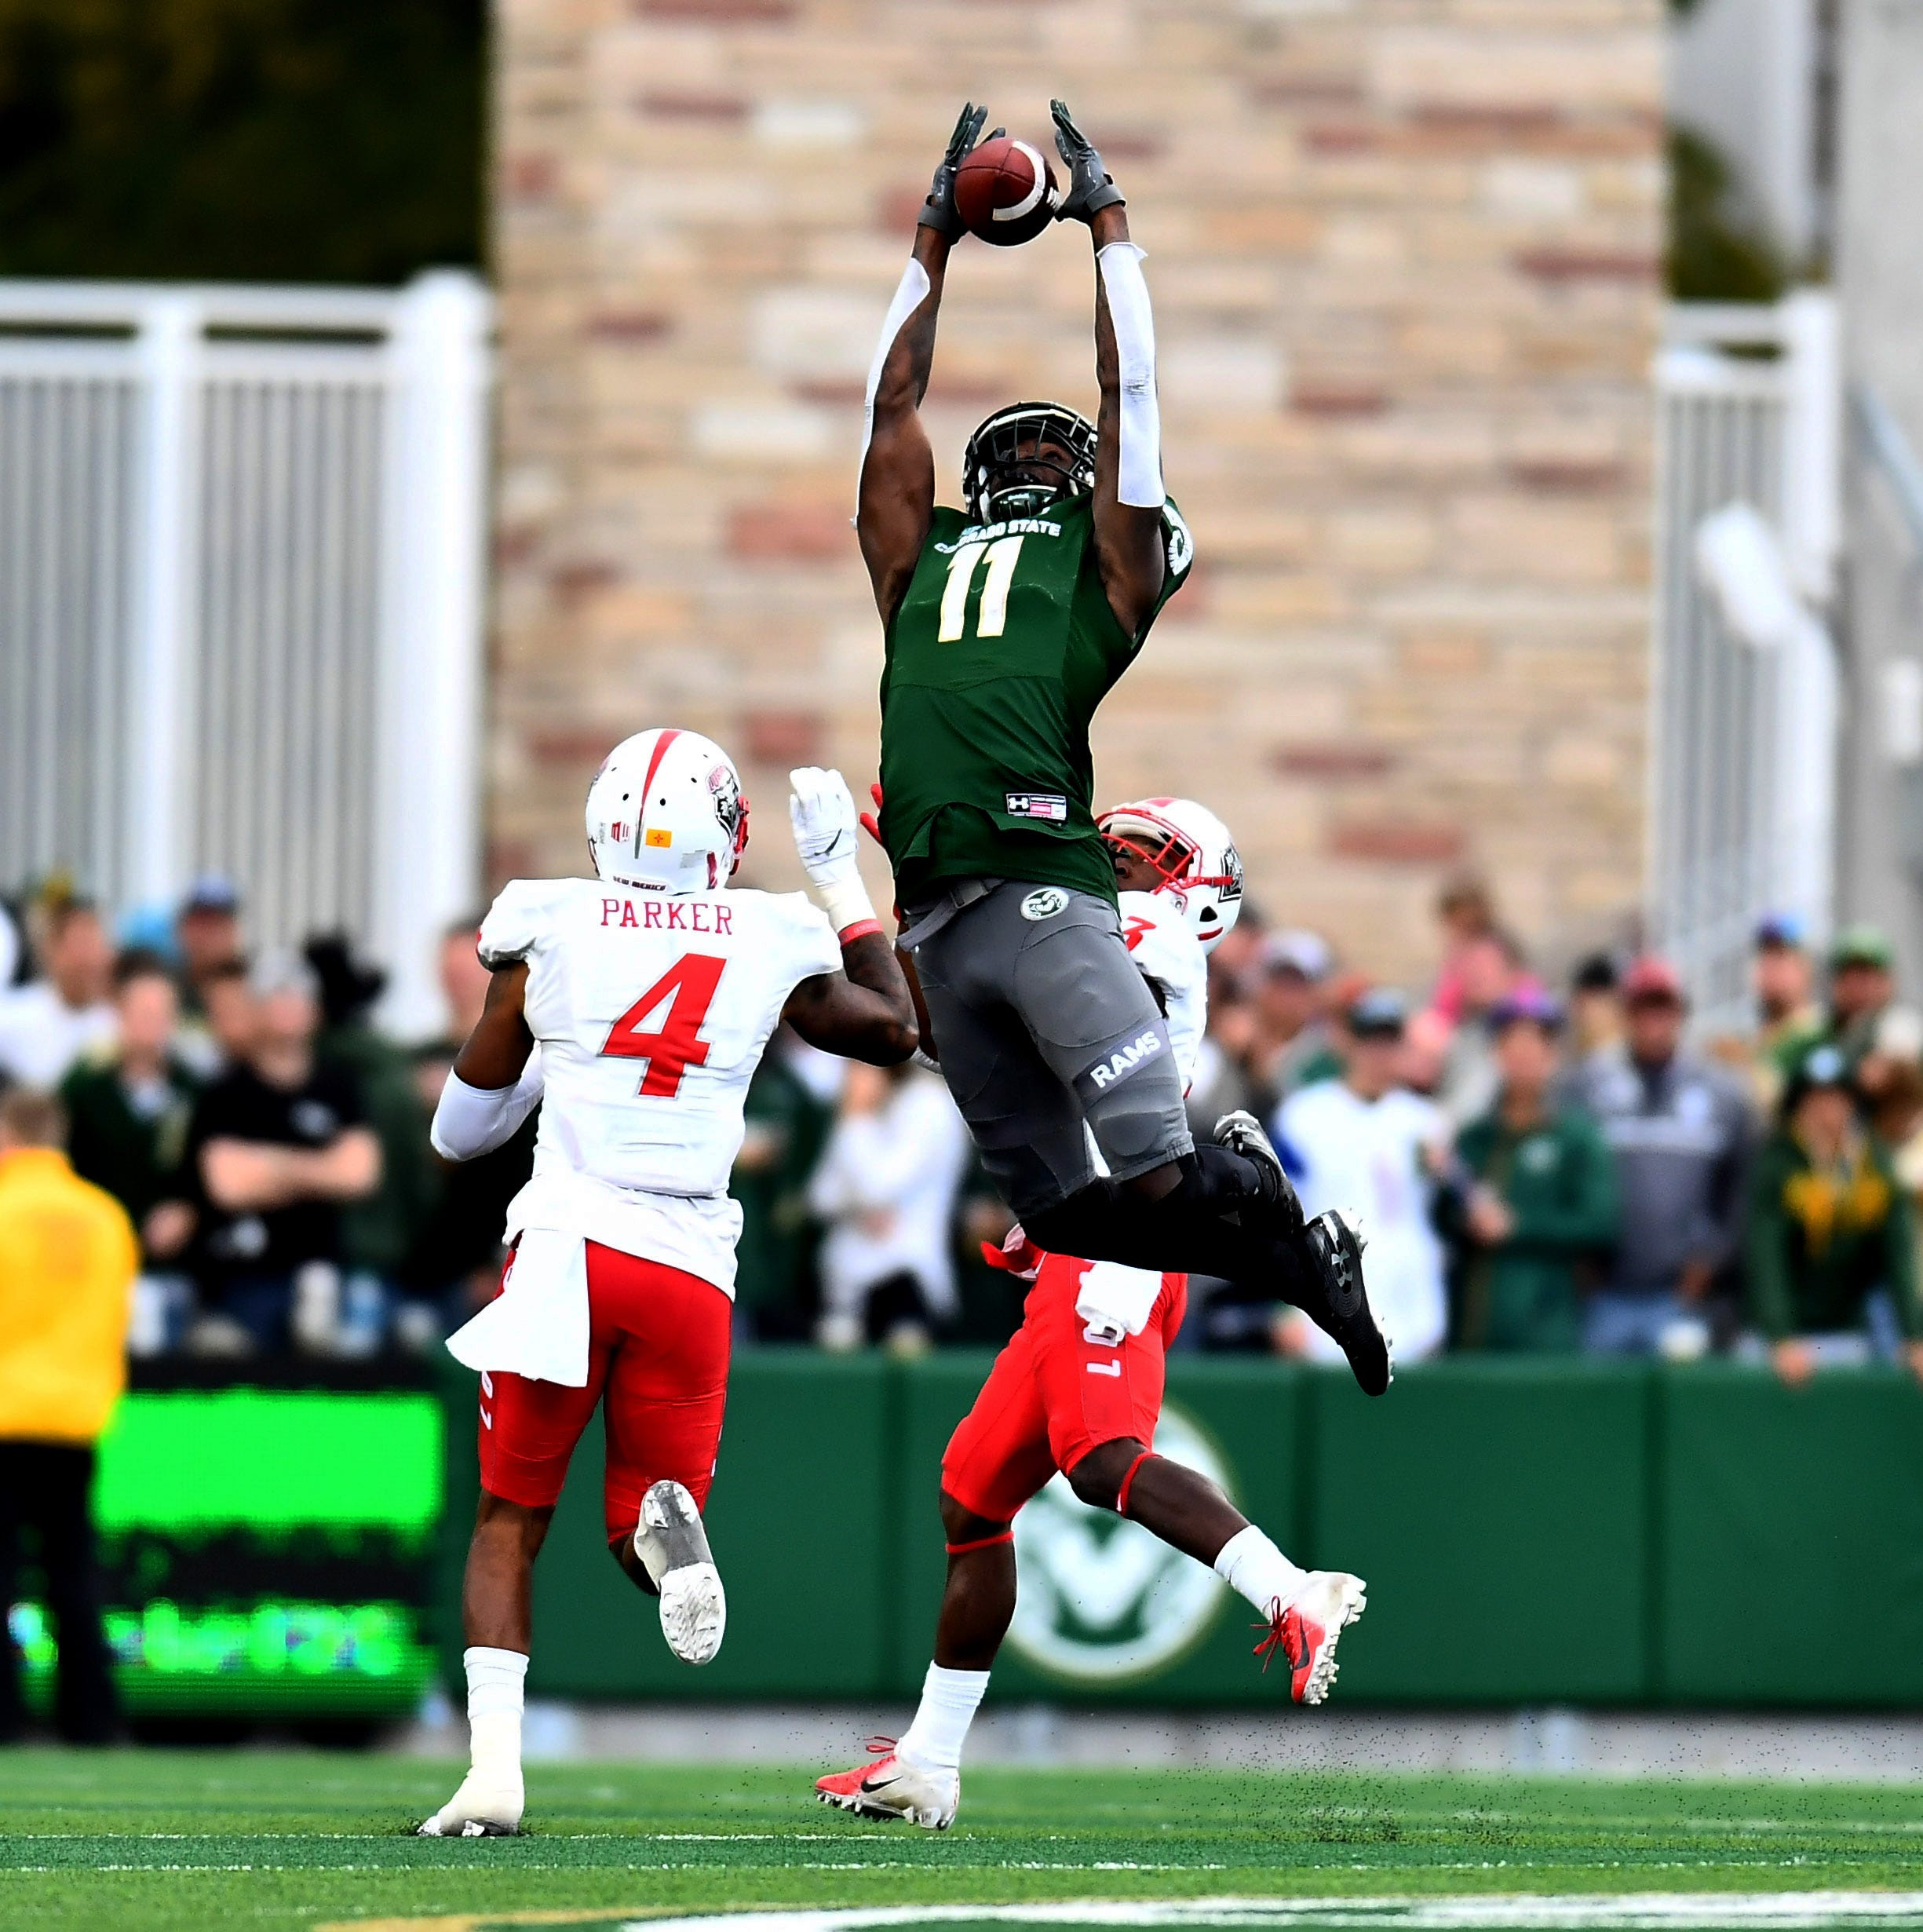 CSU football earns another 'C' in wild, homecoming win over New Mexico